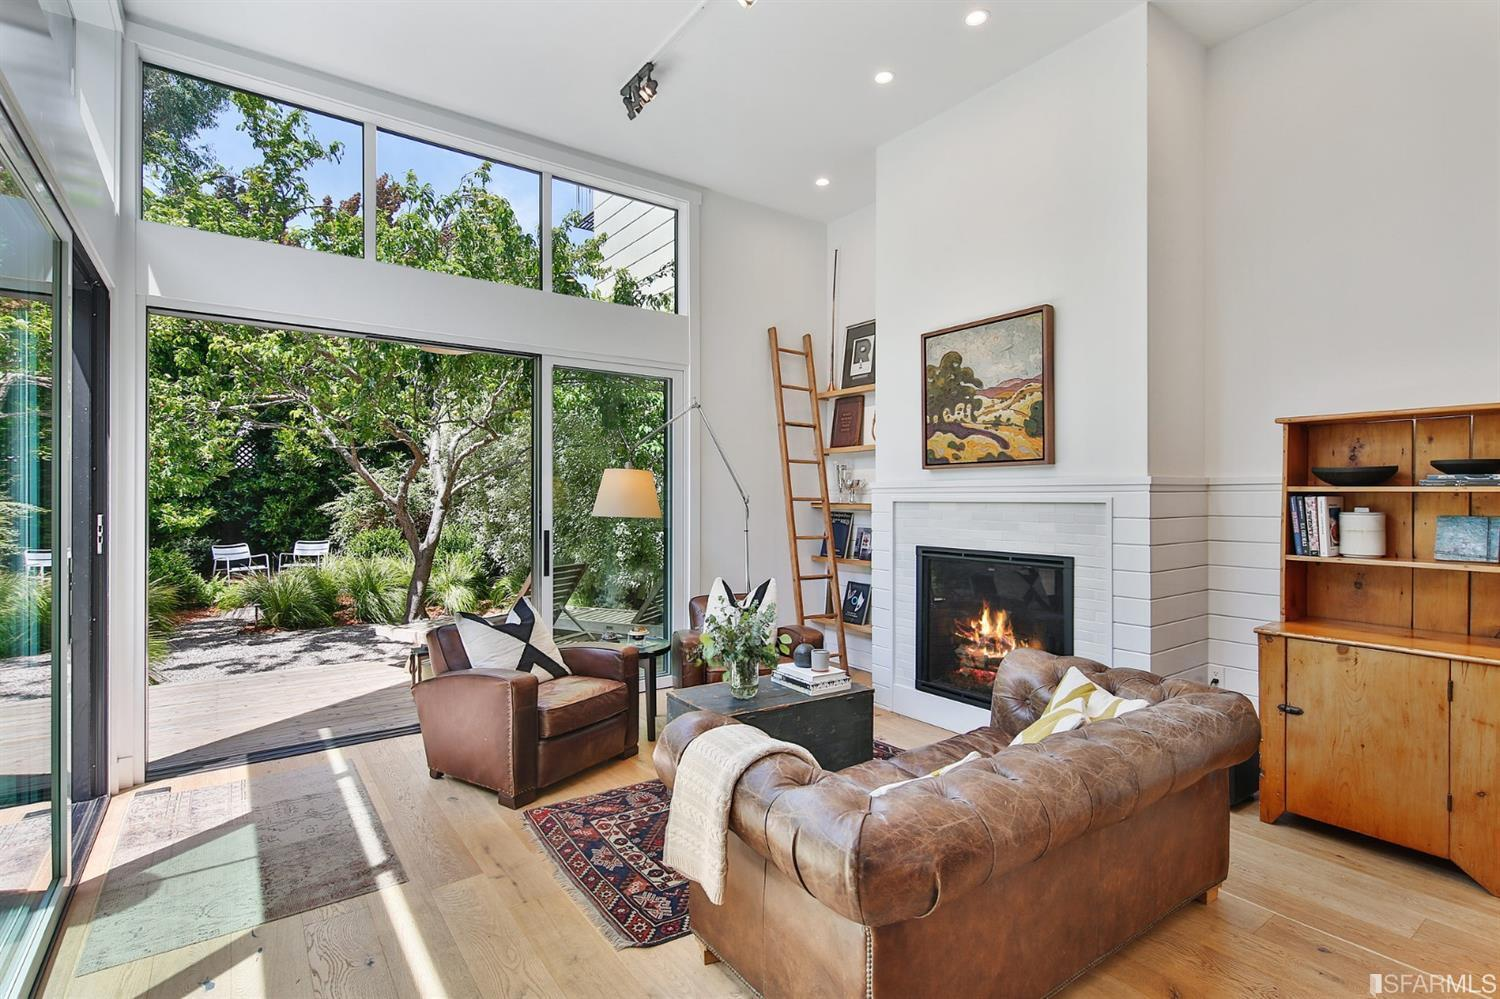 Brown couch set in living room area with fireplace and large floor to ceiling windows